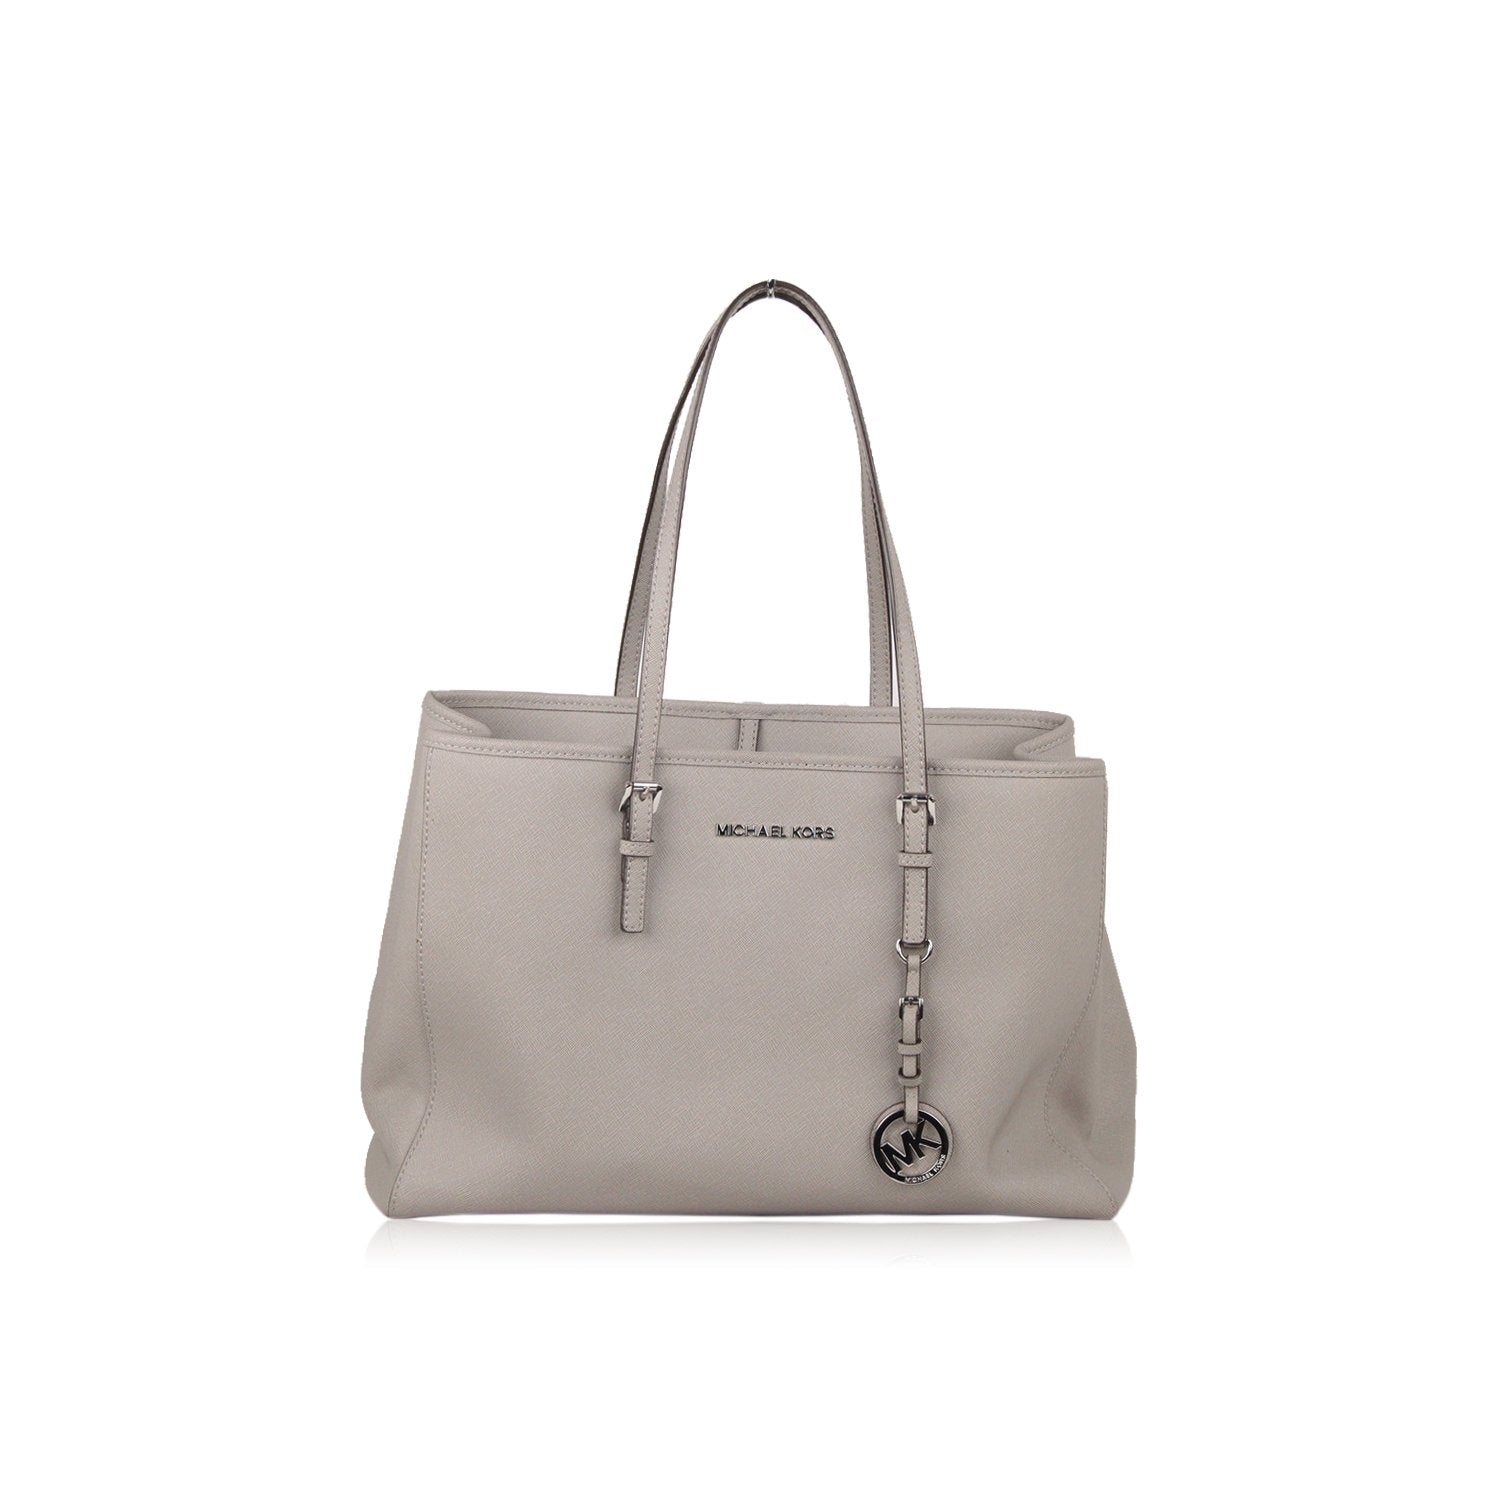 06573701f40d Enjoy Michael Kors Jet Set Travel Tote Bag at OPHERTYCIOCCI ...